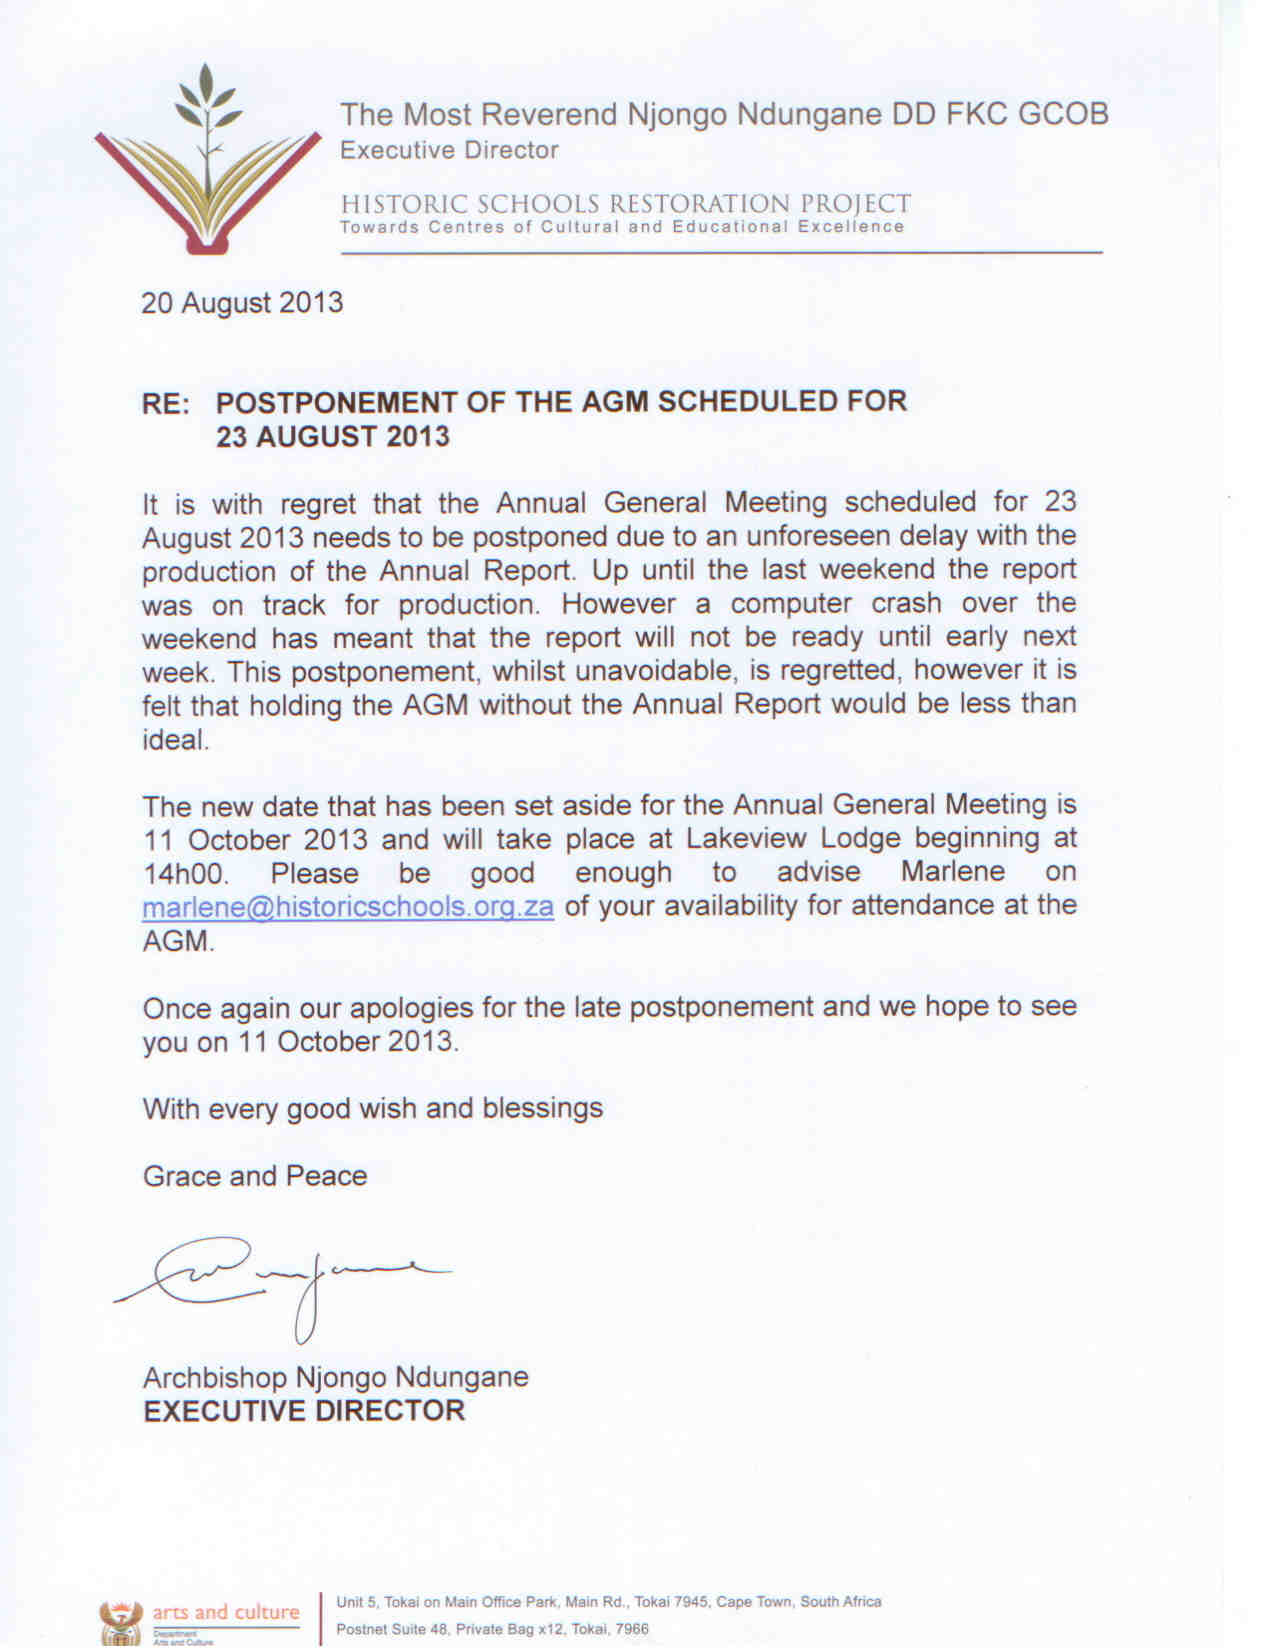 POSTPONEMENT OF AGM SCHEDULED FOR 23 AUGUST 2013